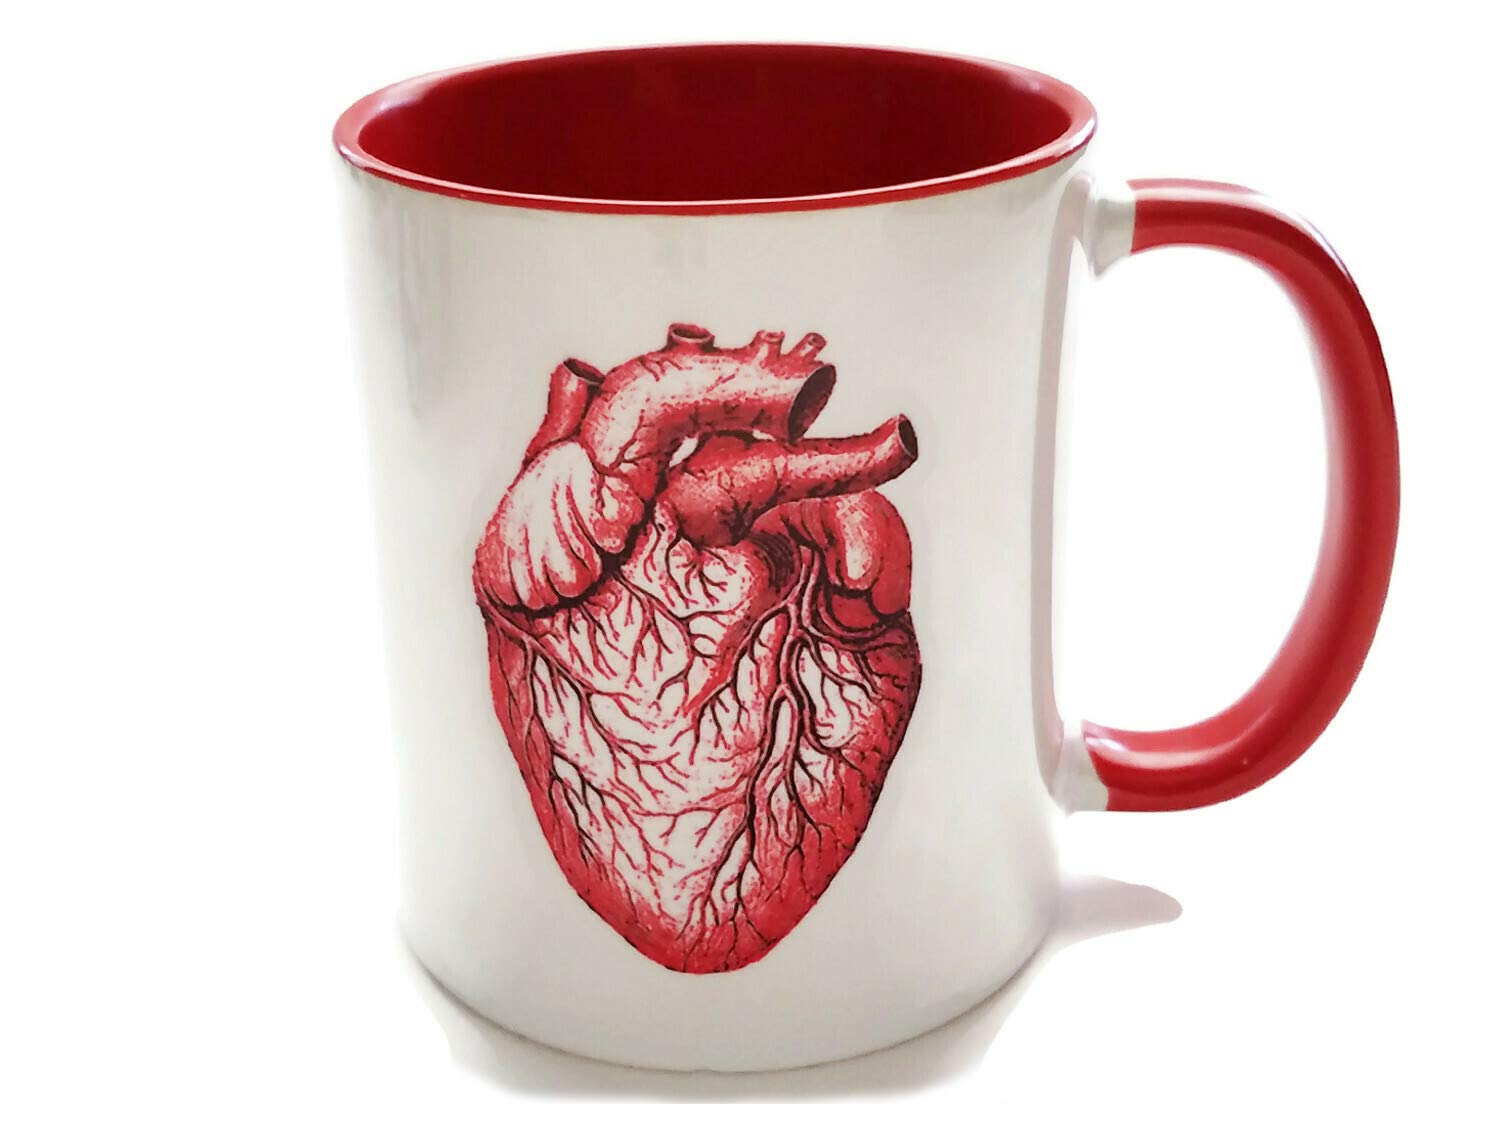 Max 68% OFF Oakland Mall Red Anatomical Heart Coffee Mug Nurse Practitione Anatomy Doctor